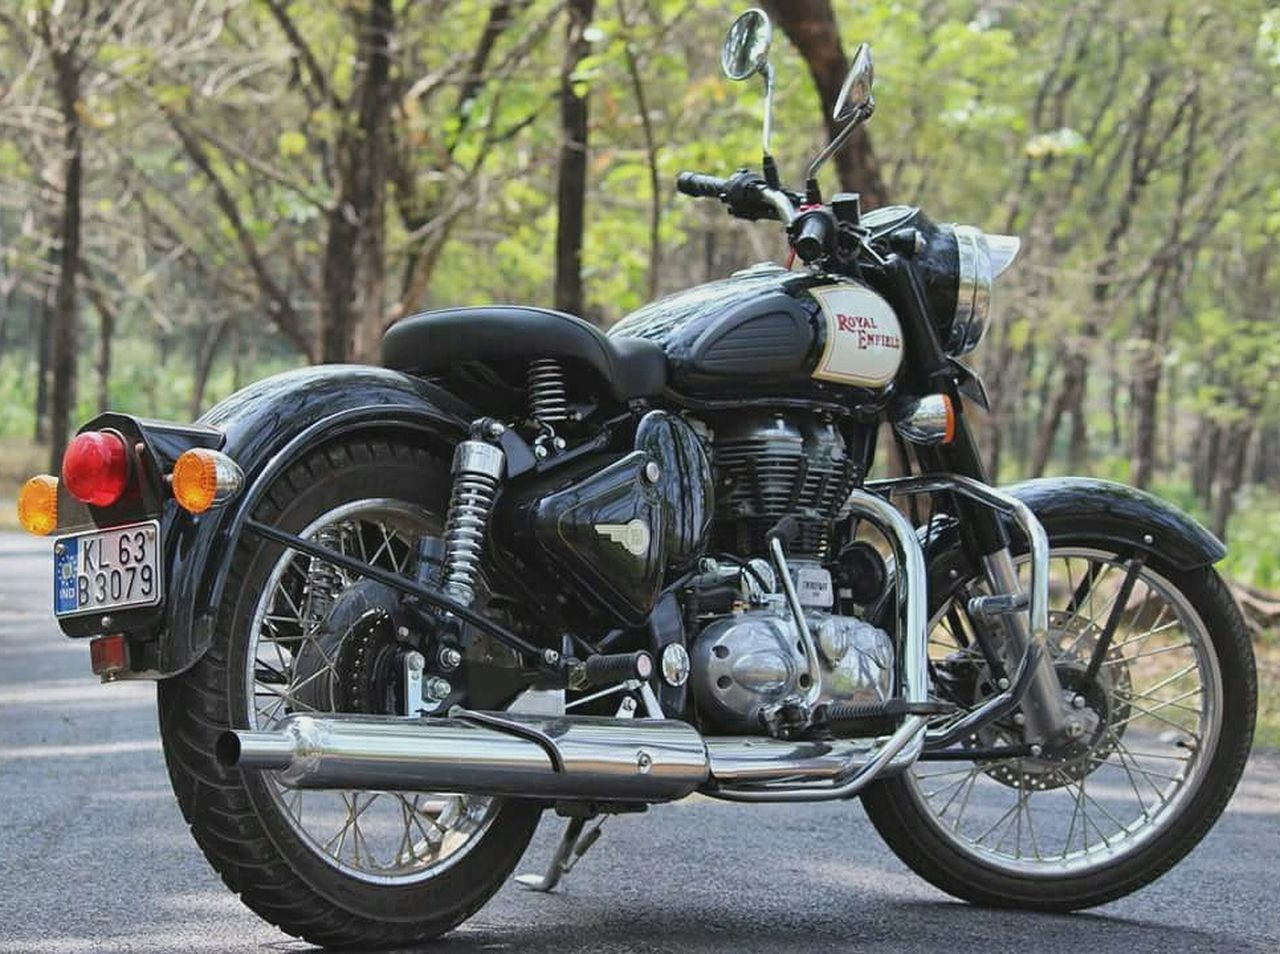 royalenfield Transportation Motorcycle Outdoors Stationary Road No People Close-up Day Tire Outdoorlife